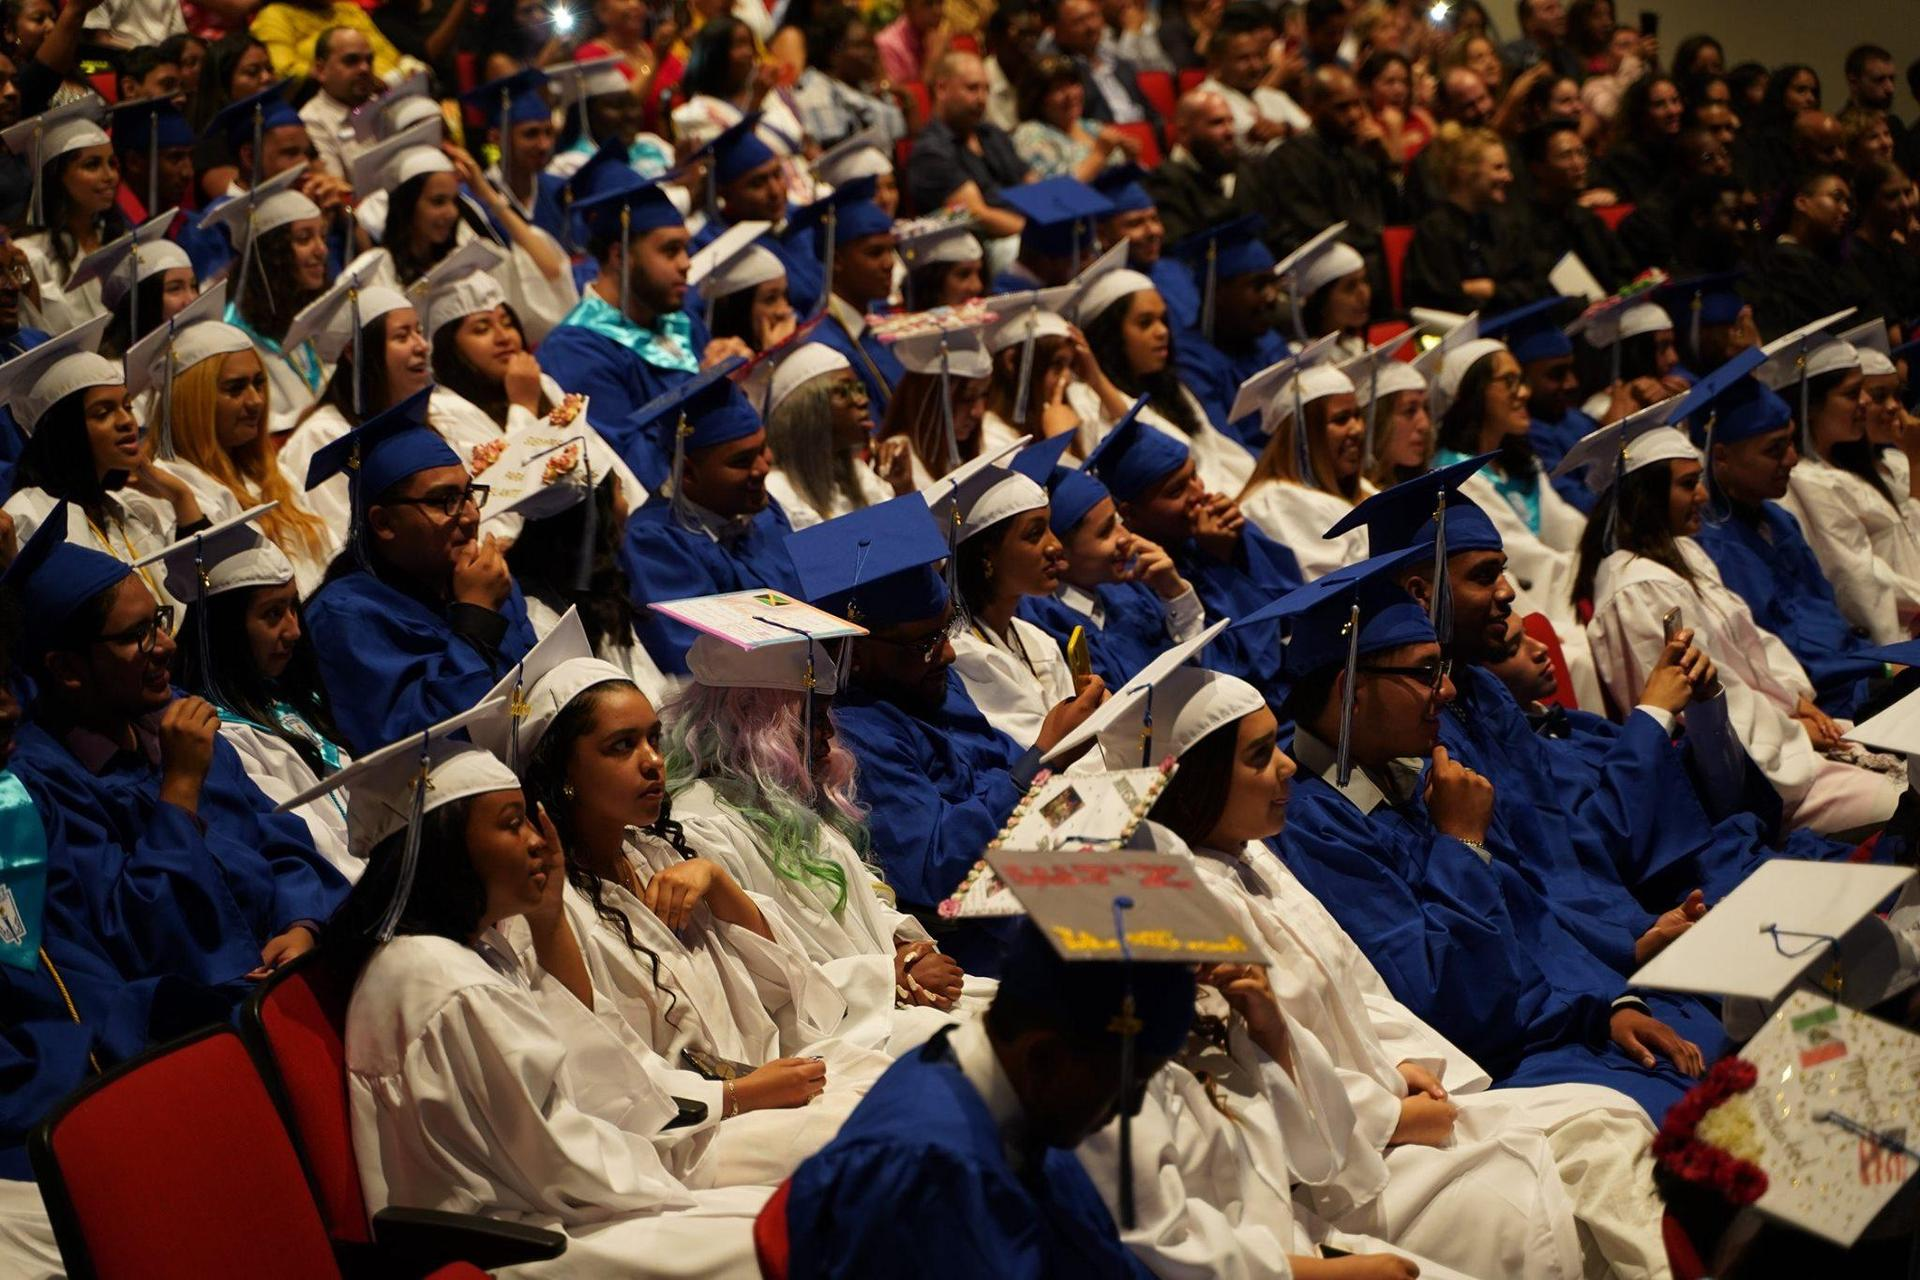 Students in white and blue gowns in graduation